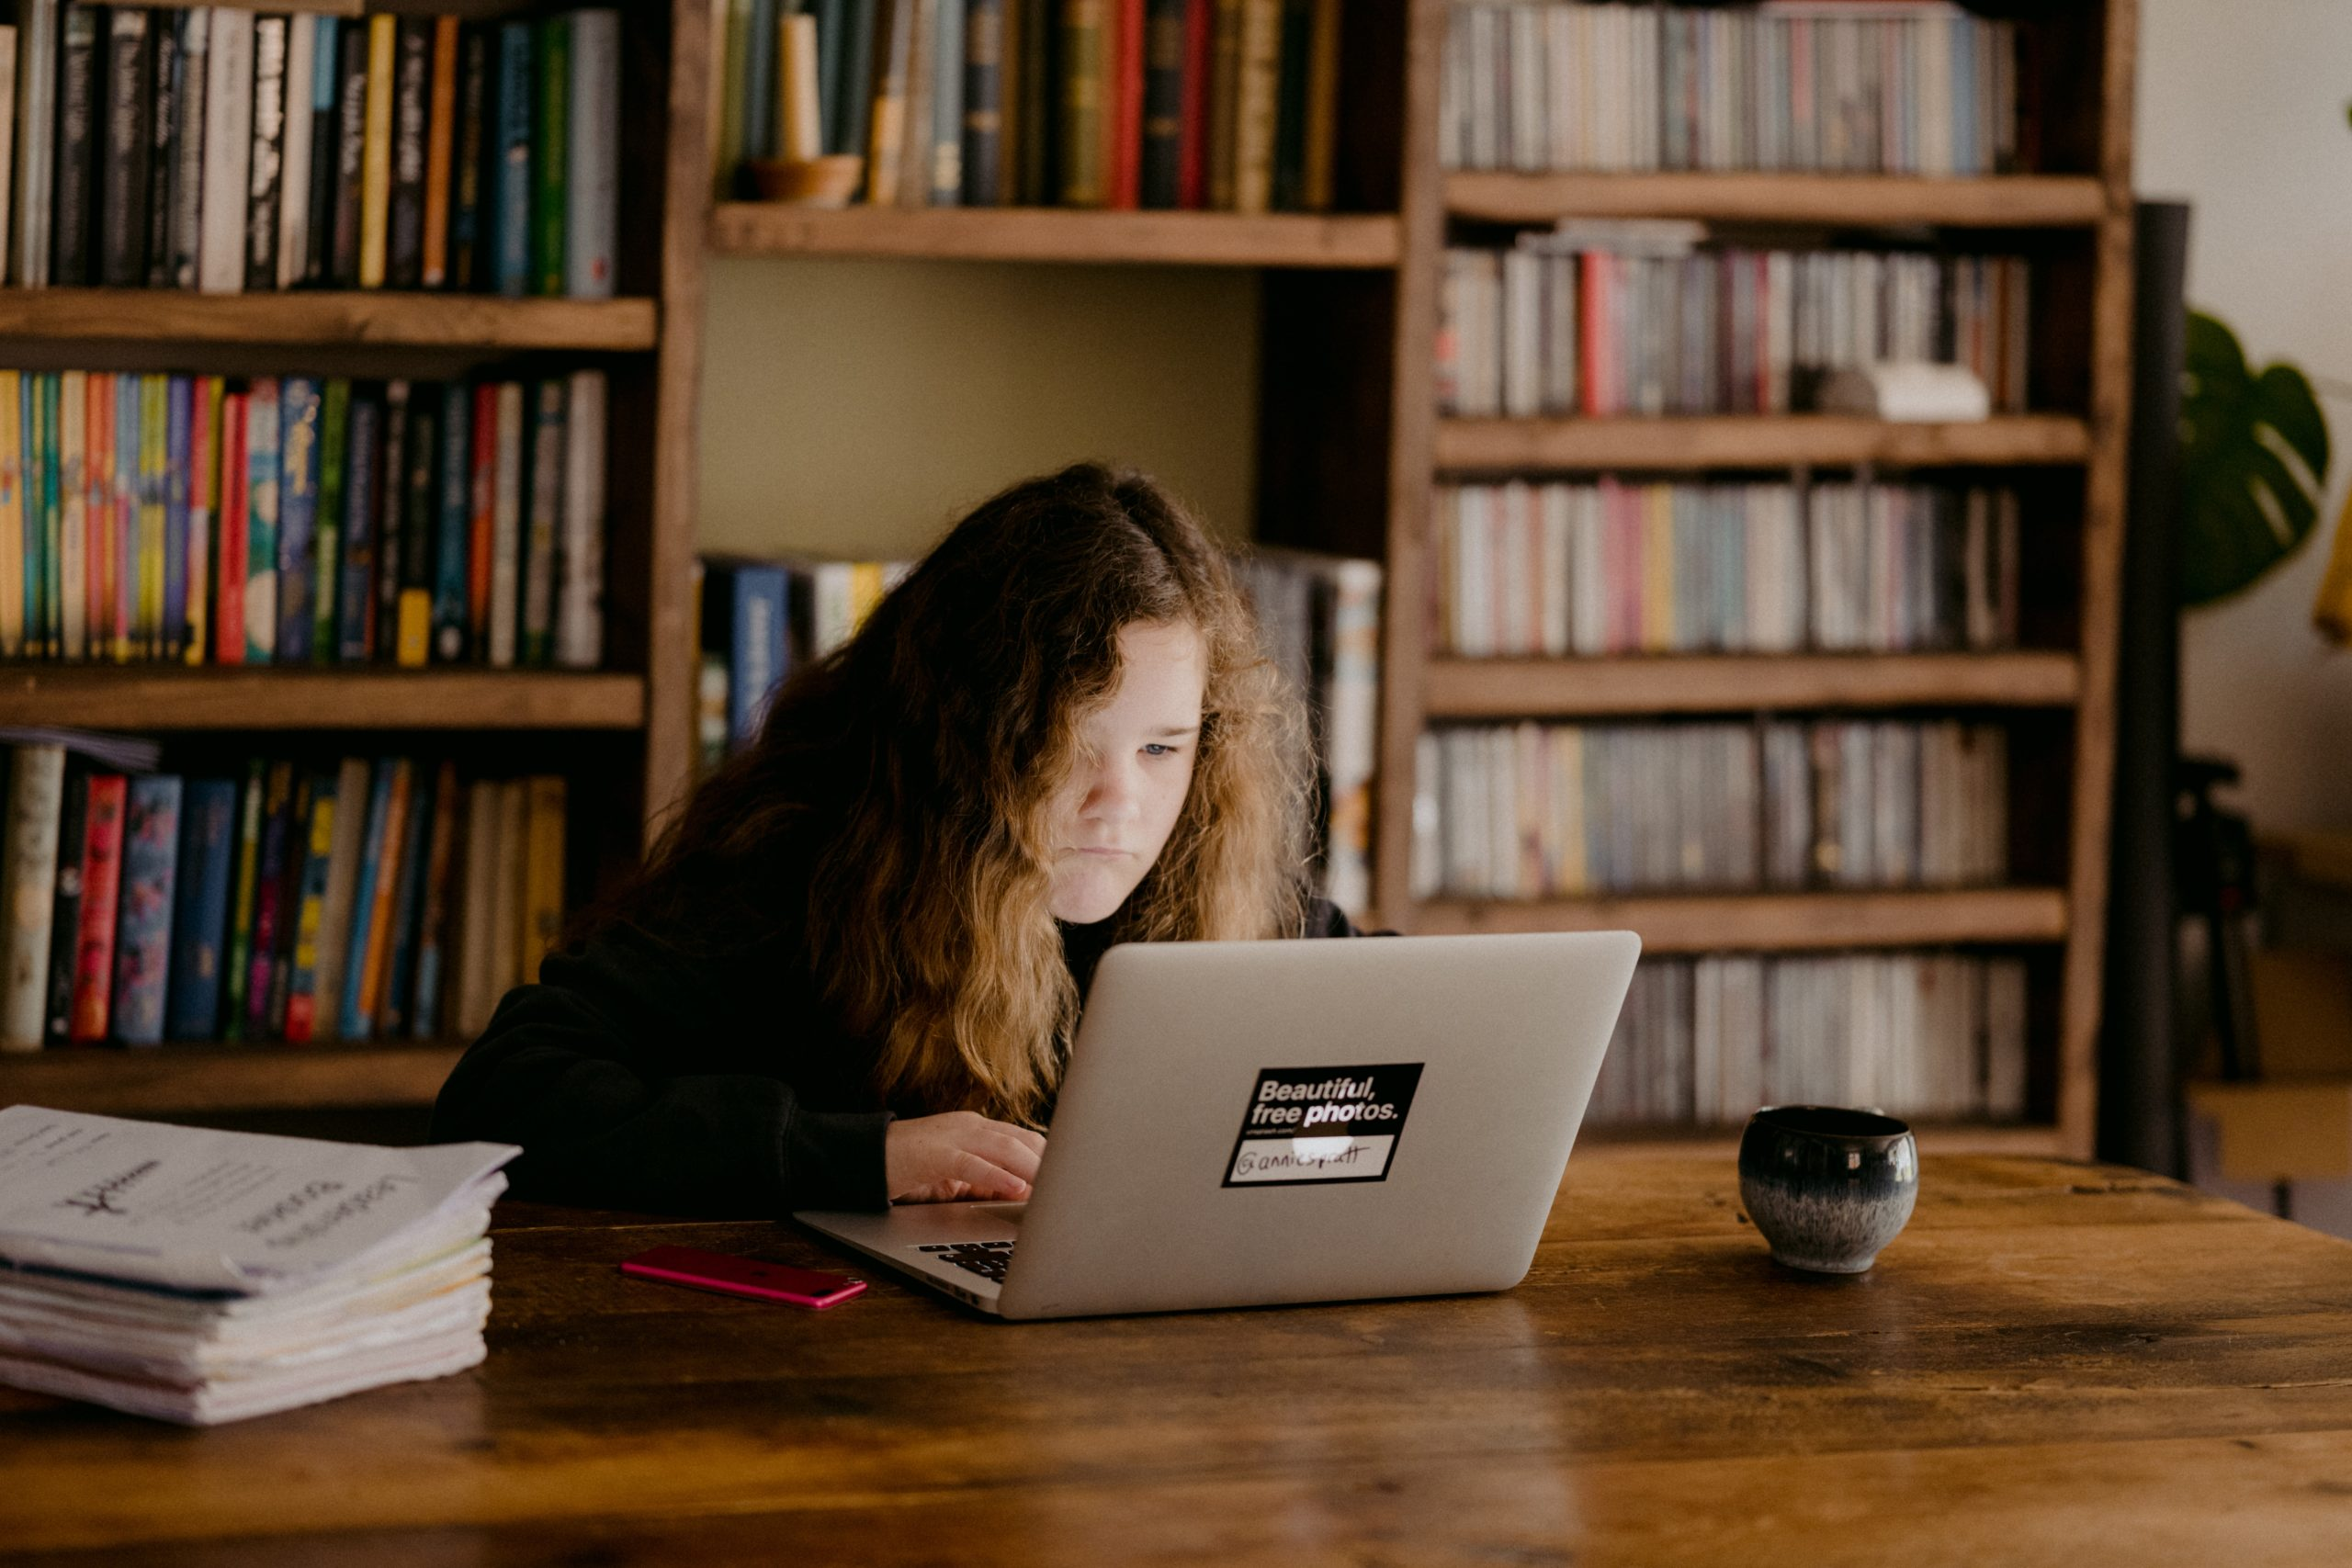 A teenager works on a laptop in front of bookshelves